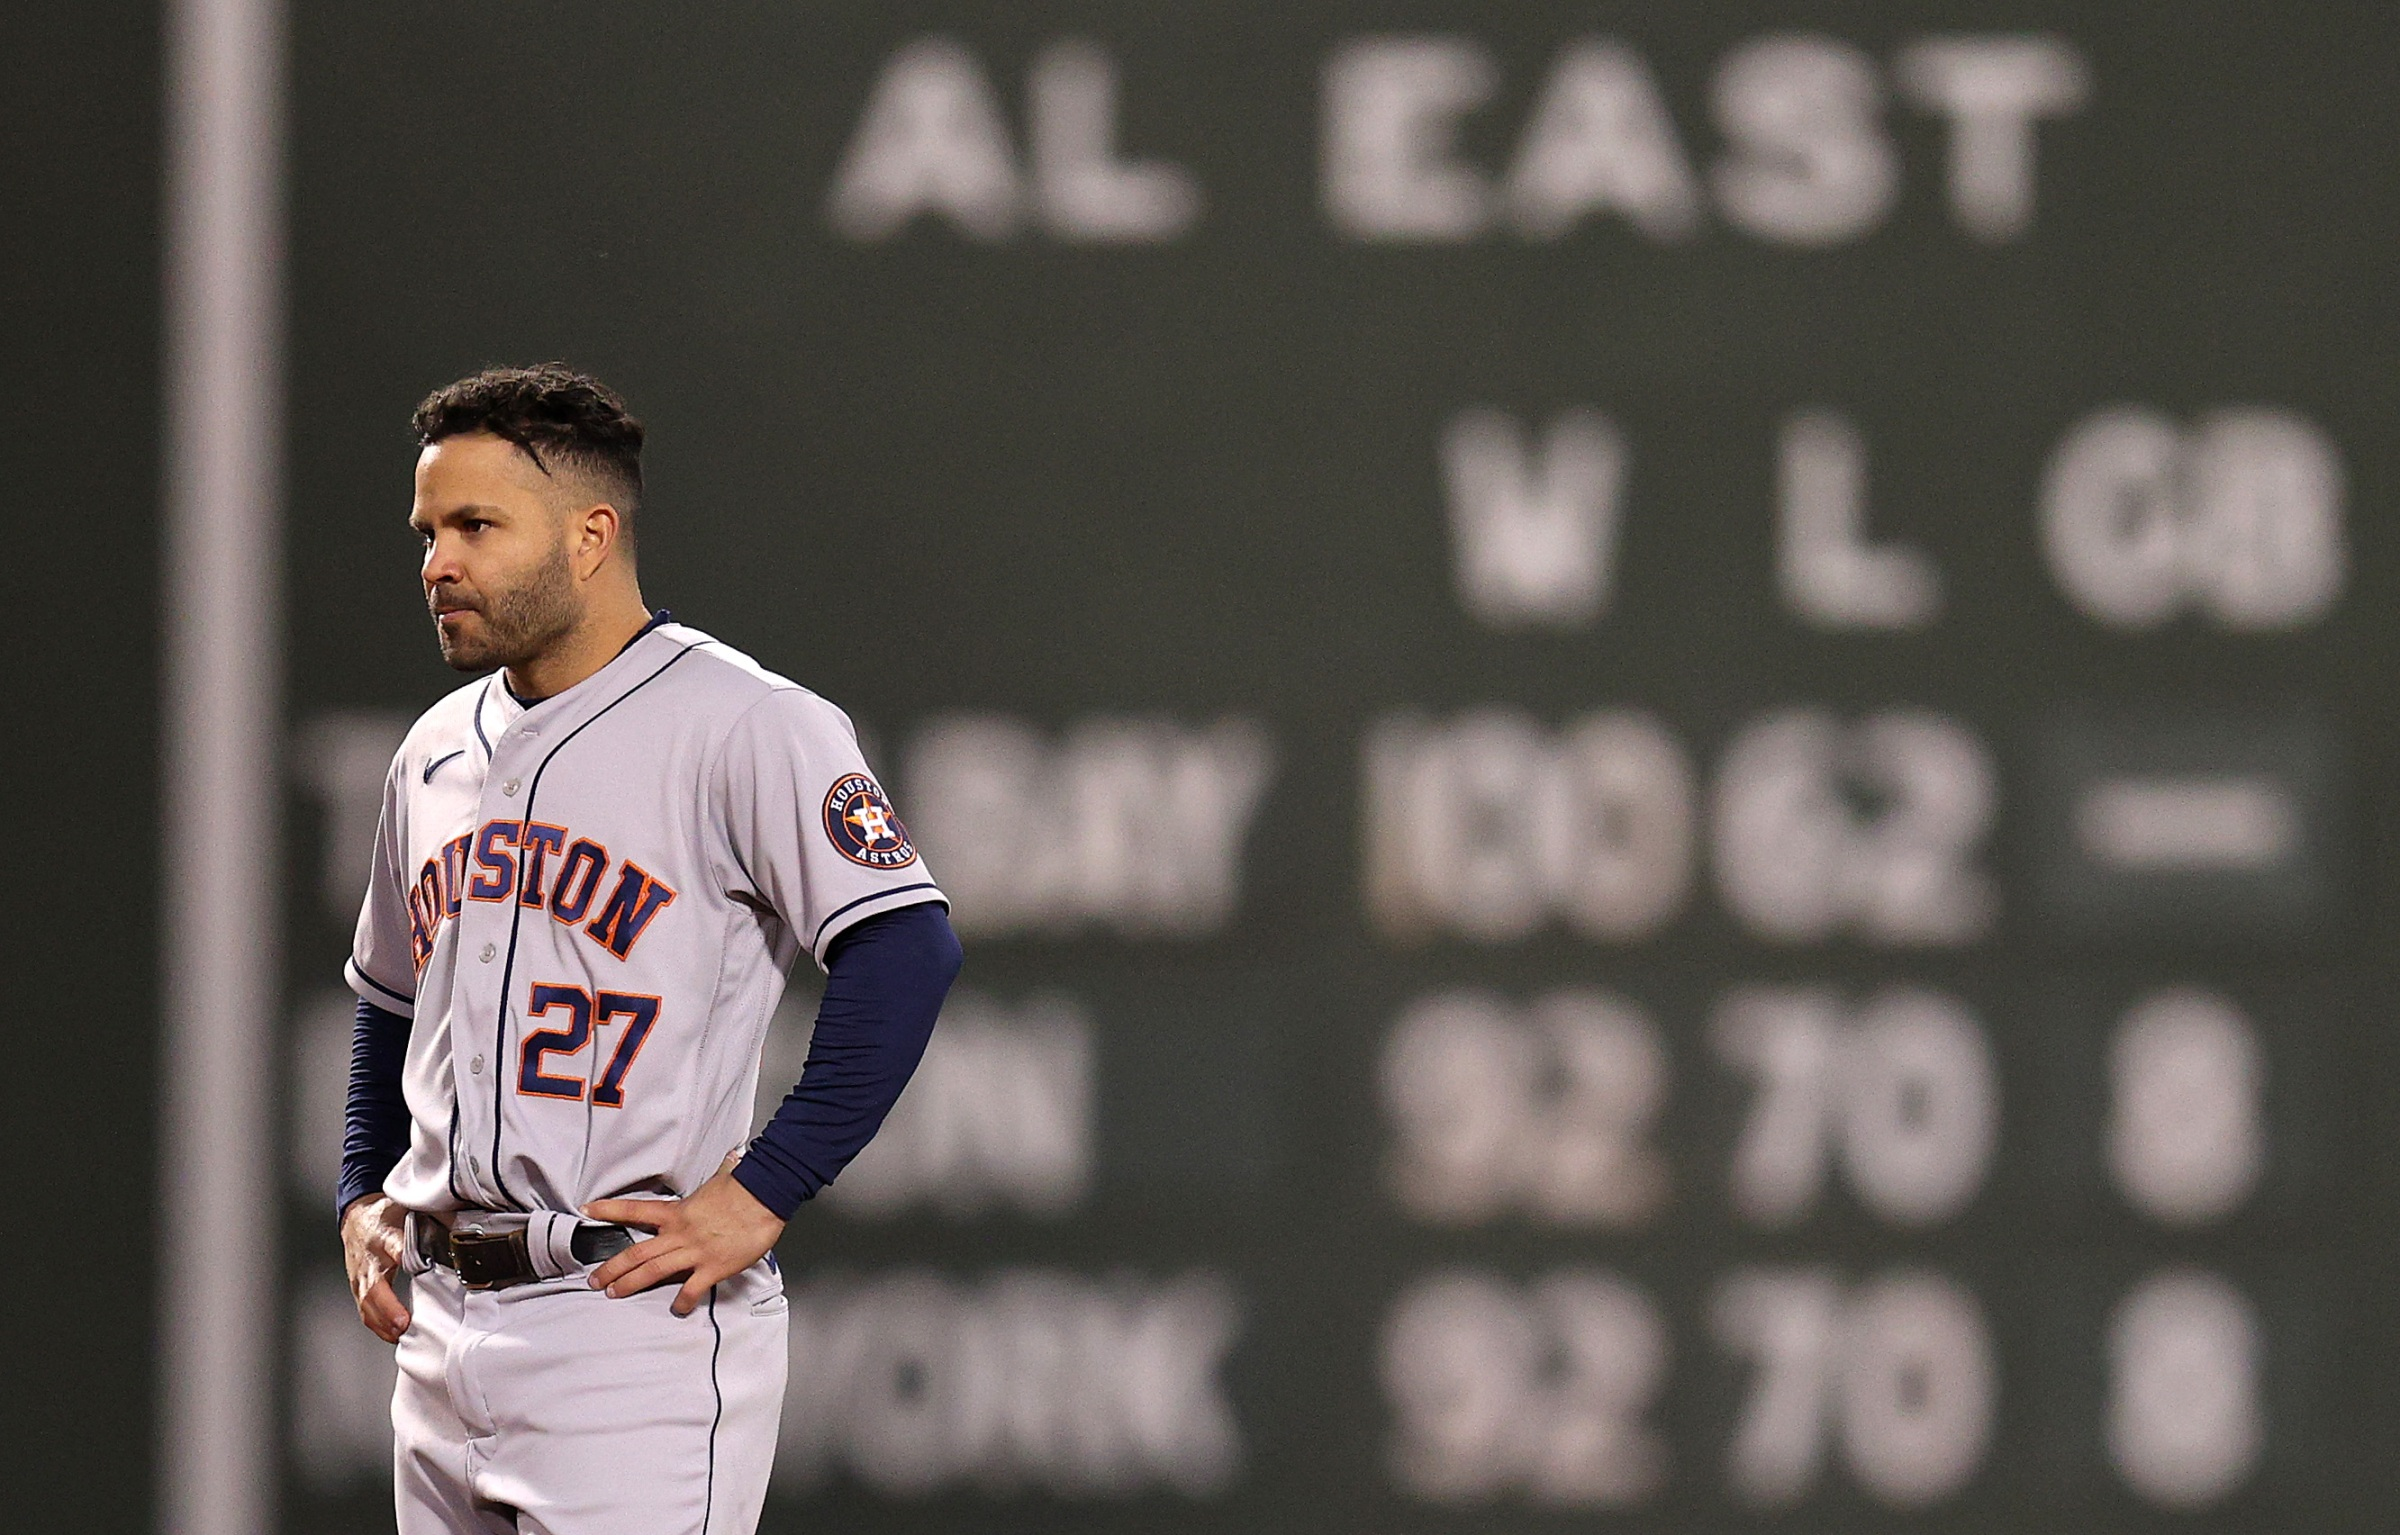 Jose Altuve stands without his hat in the field, looking unhappy